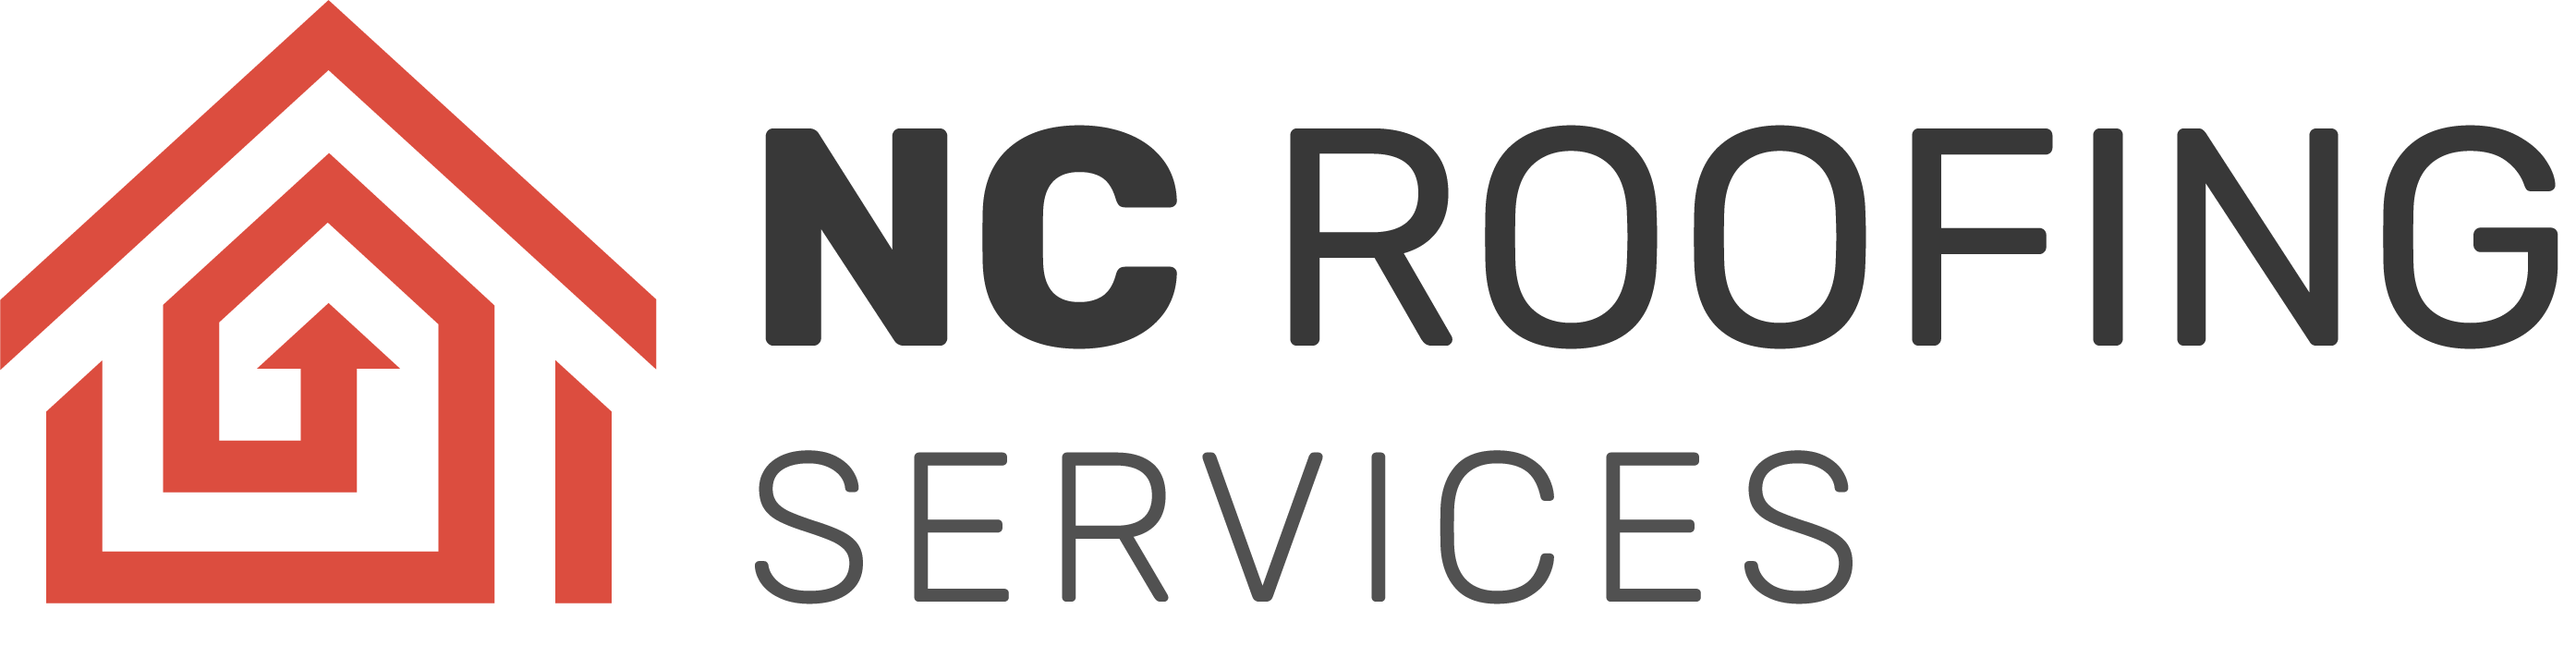 nc-roofing-services-logo